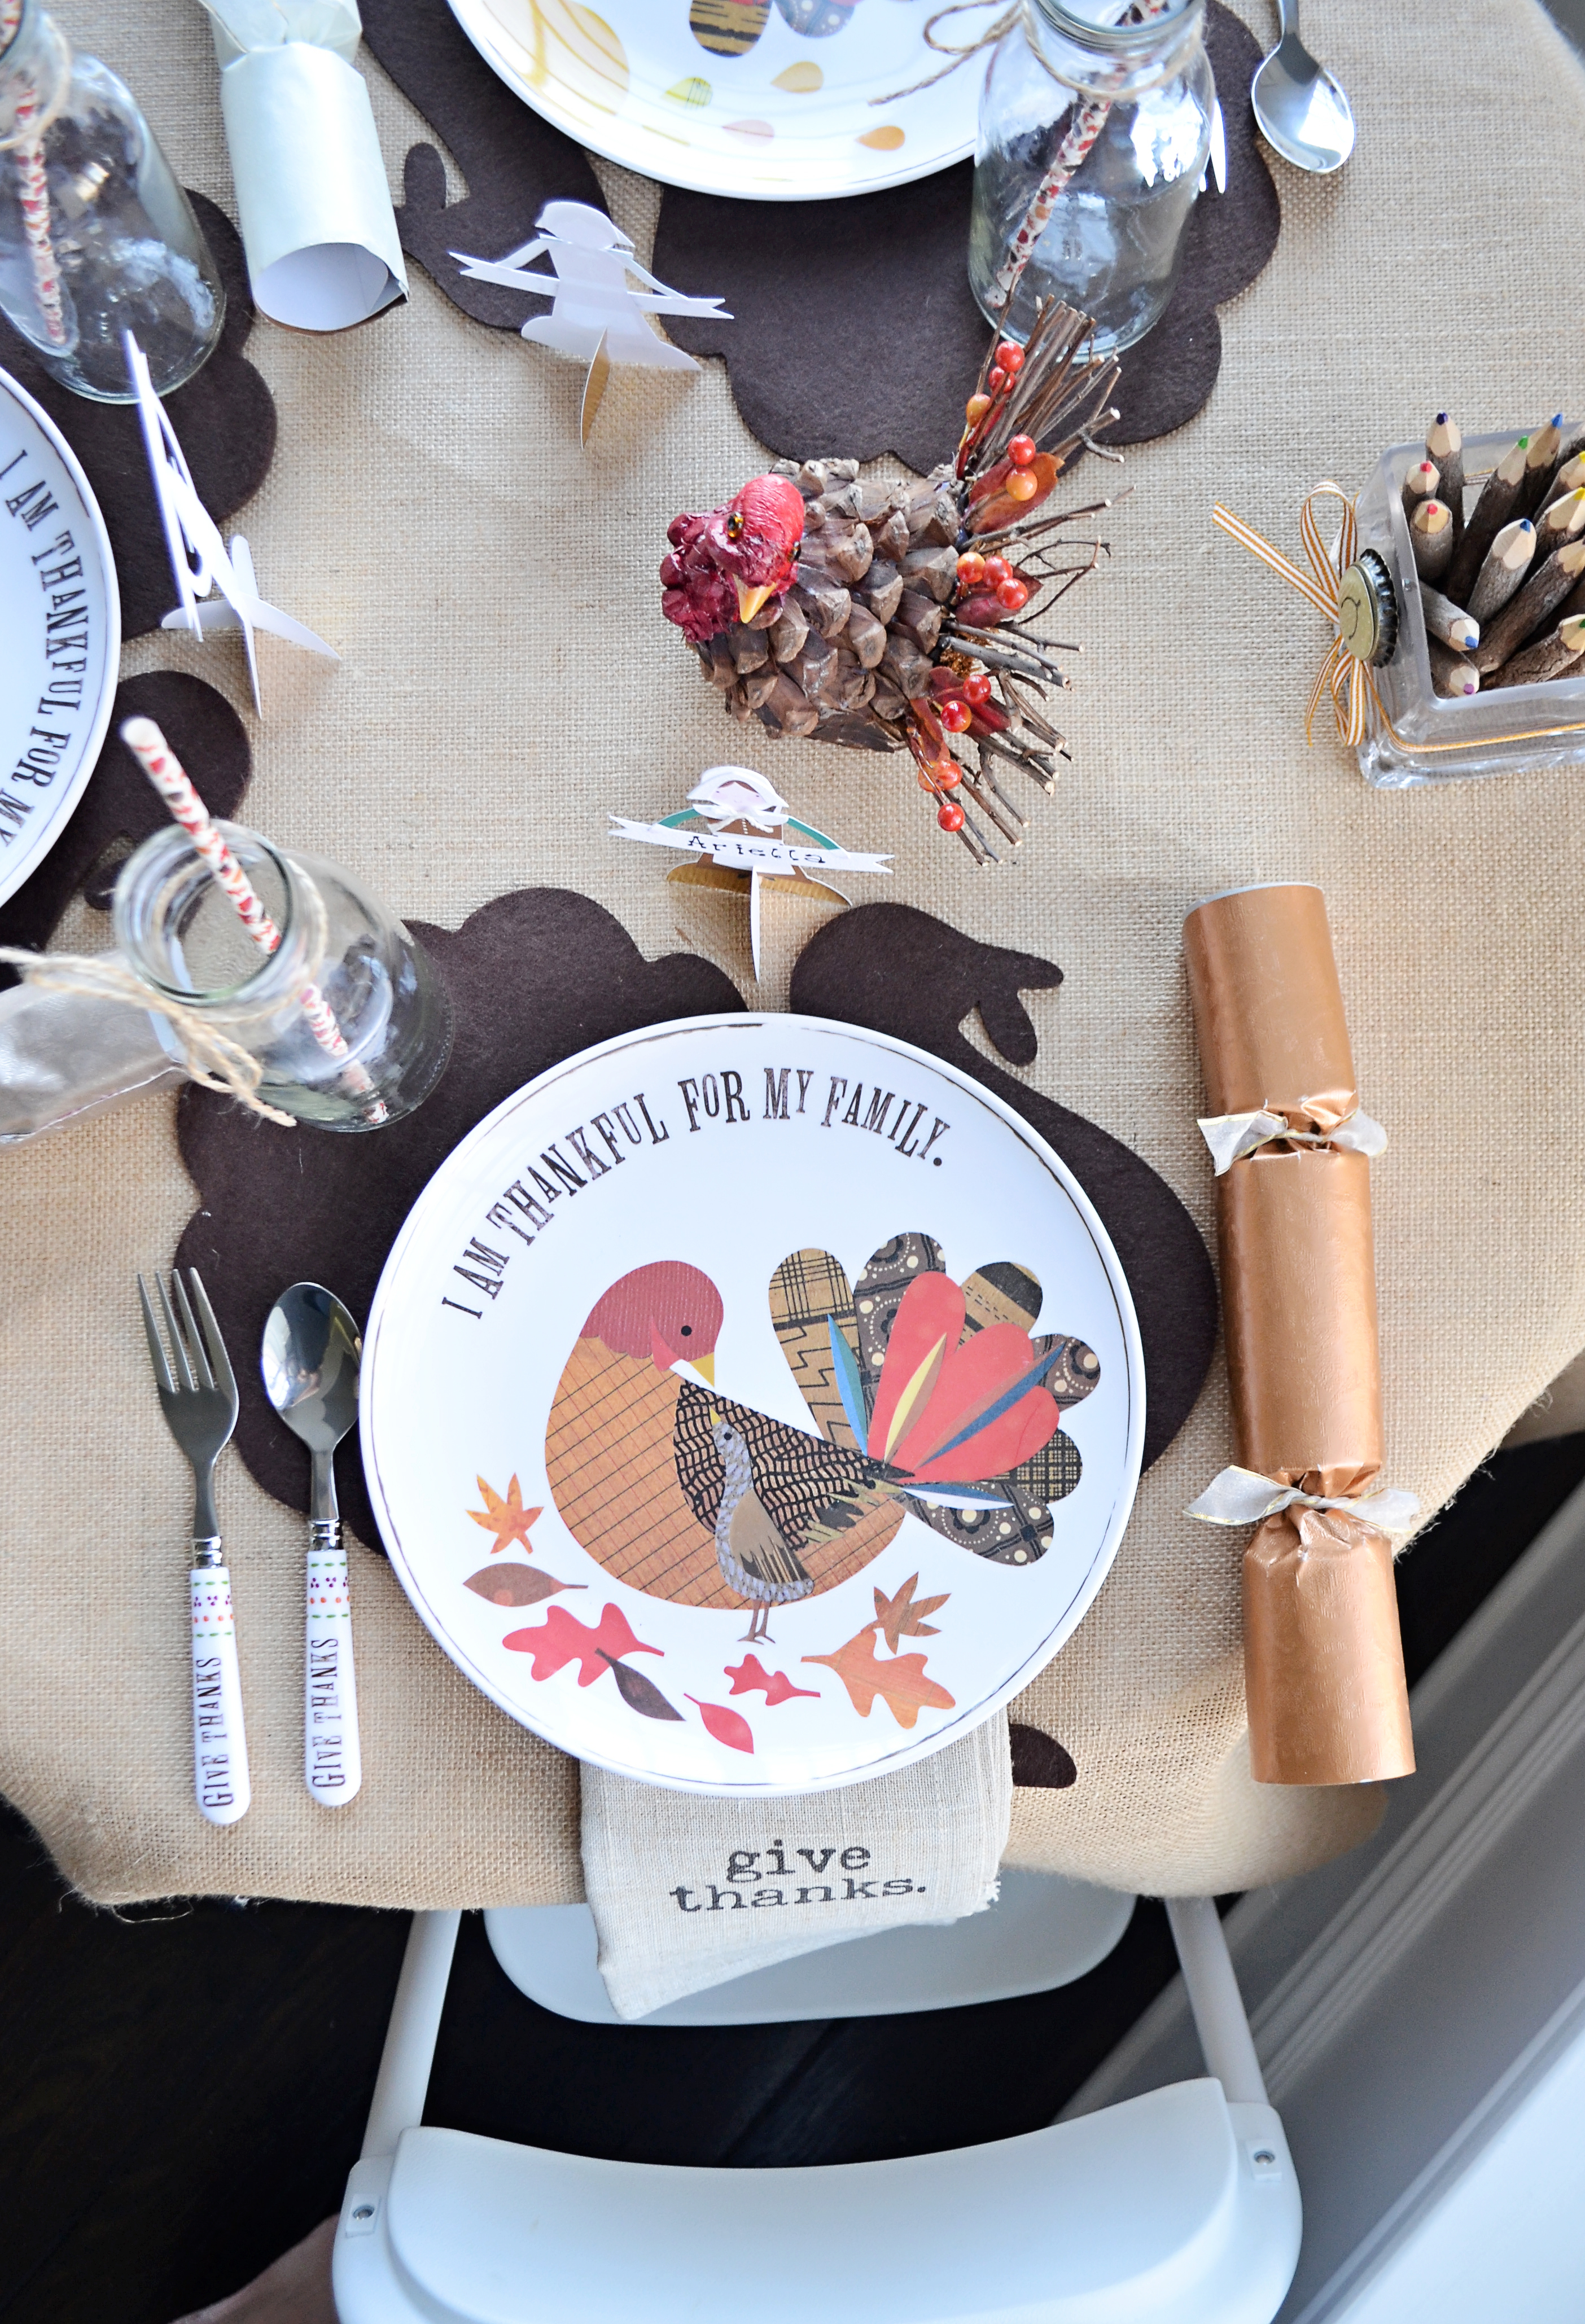 Kids Place Setting for Thanksgiving - Project Nursery